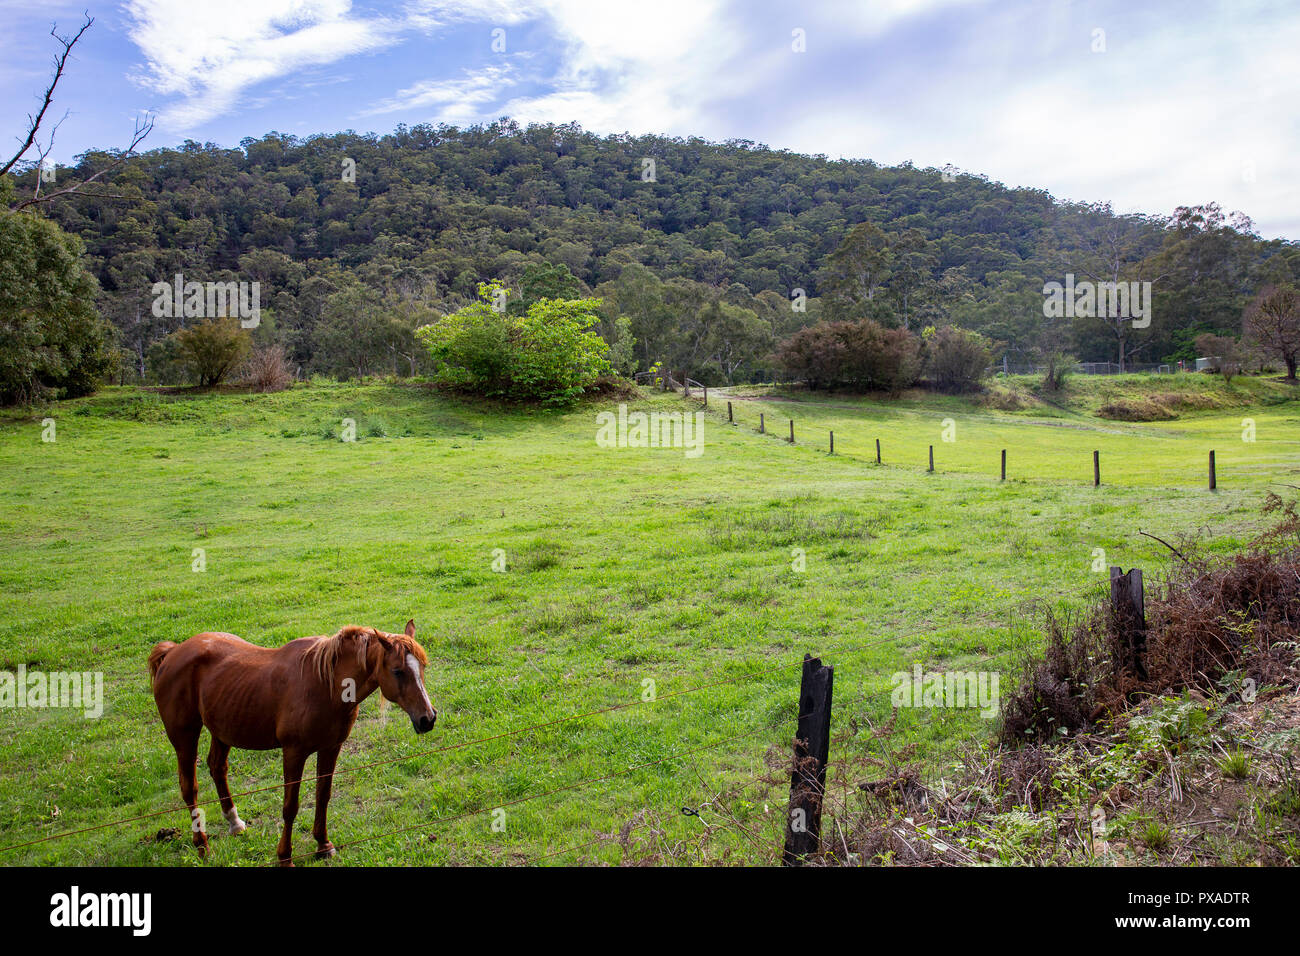 Countryside in Colo , regional New South Wales,Australia - Stock Image